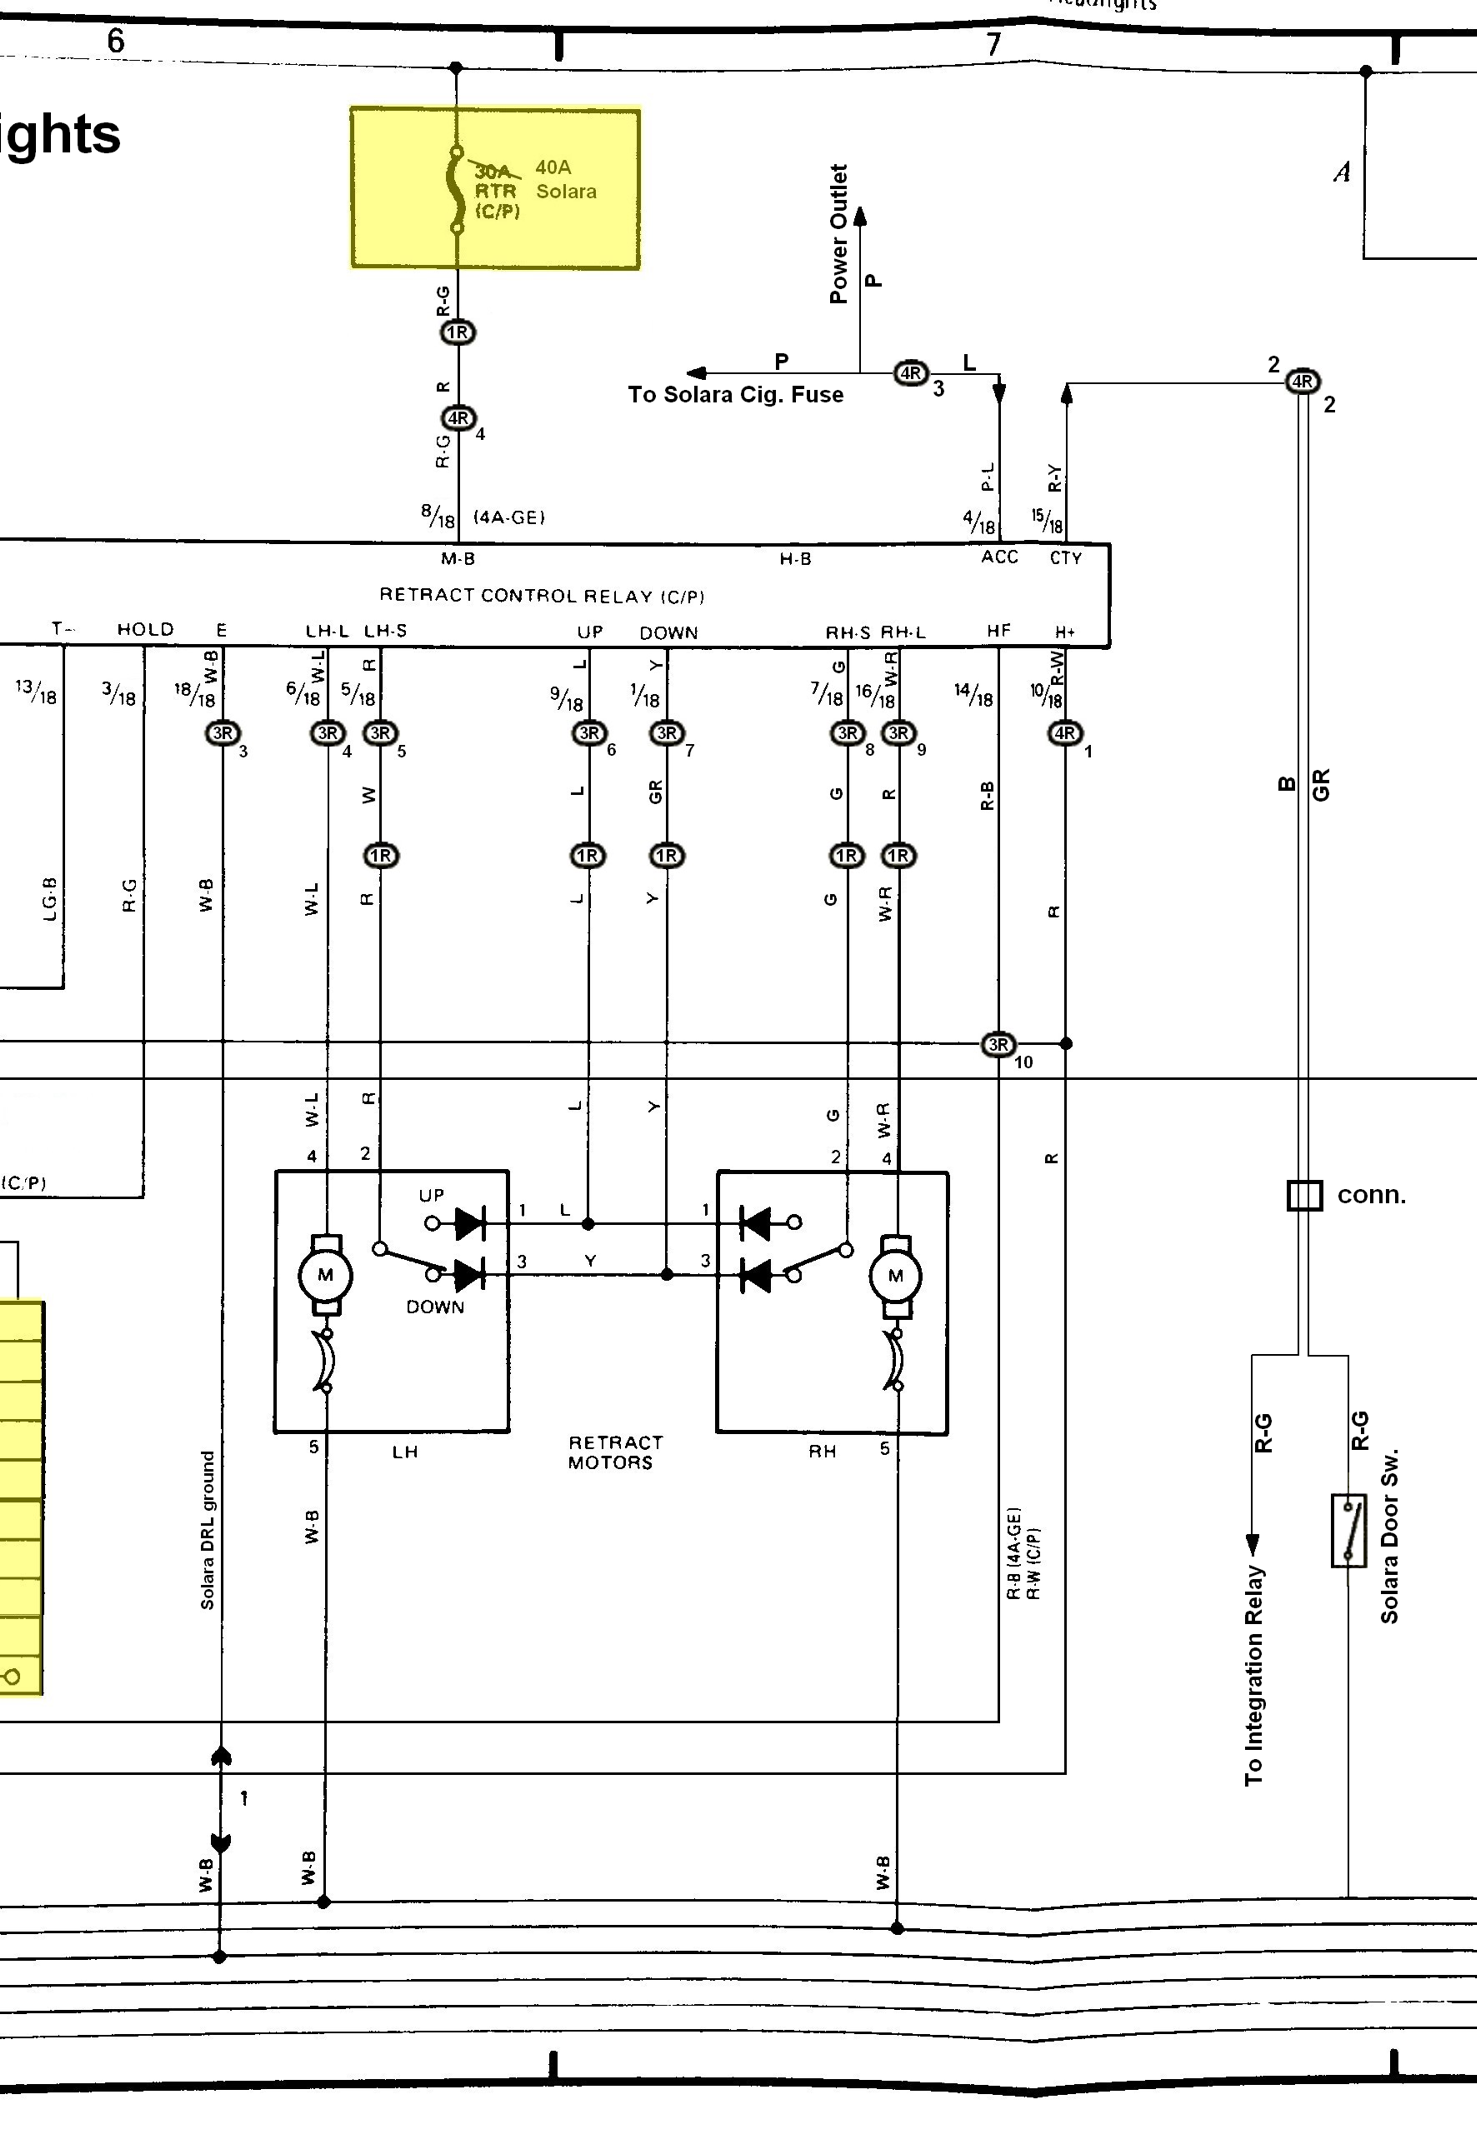 headlights_hybrid_schematic_panel3.png